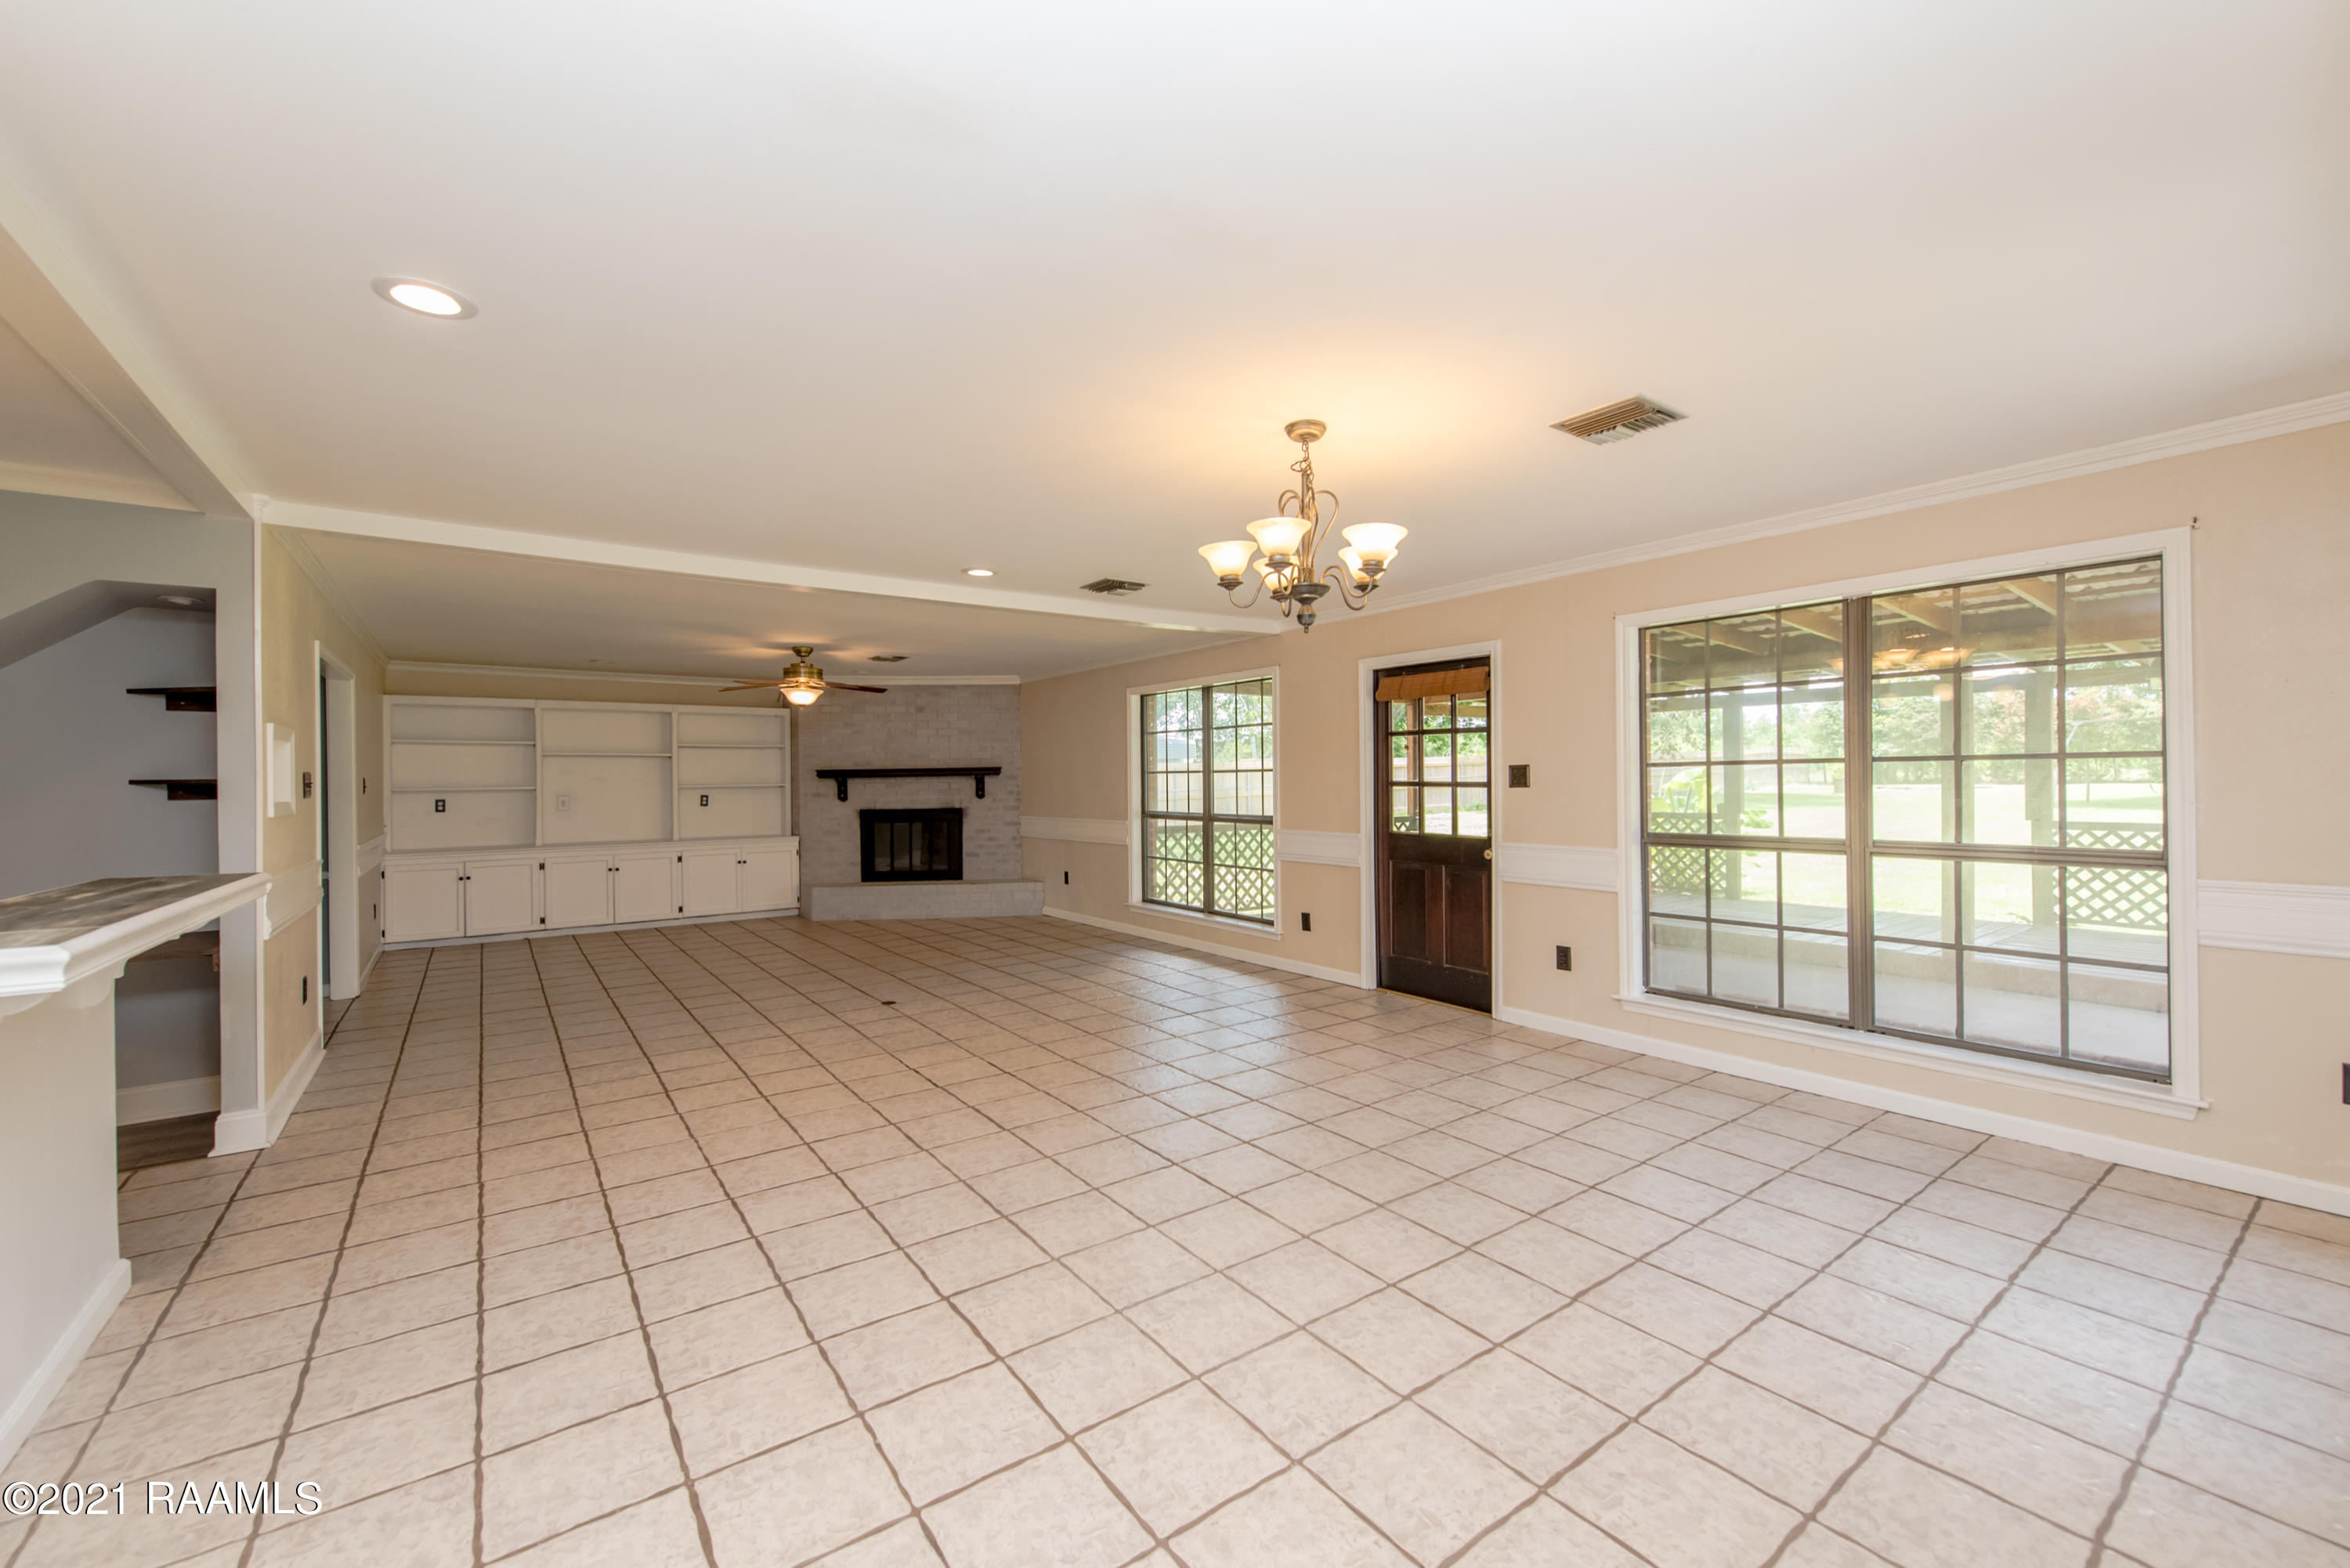 116 Countryview Drive, Youngsville, LA 70592 Photo #12